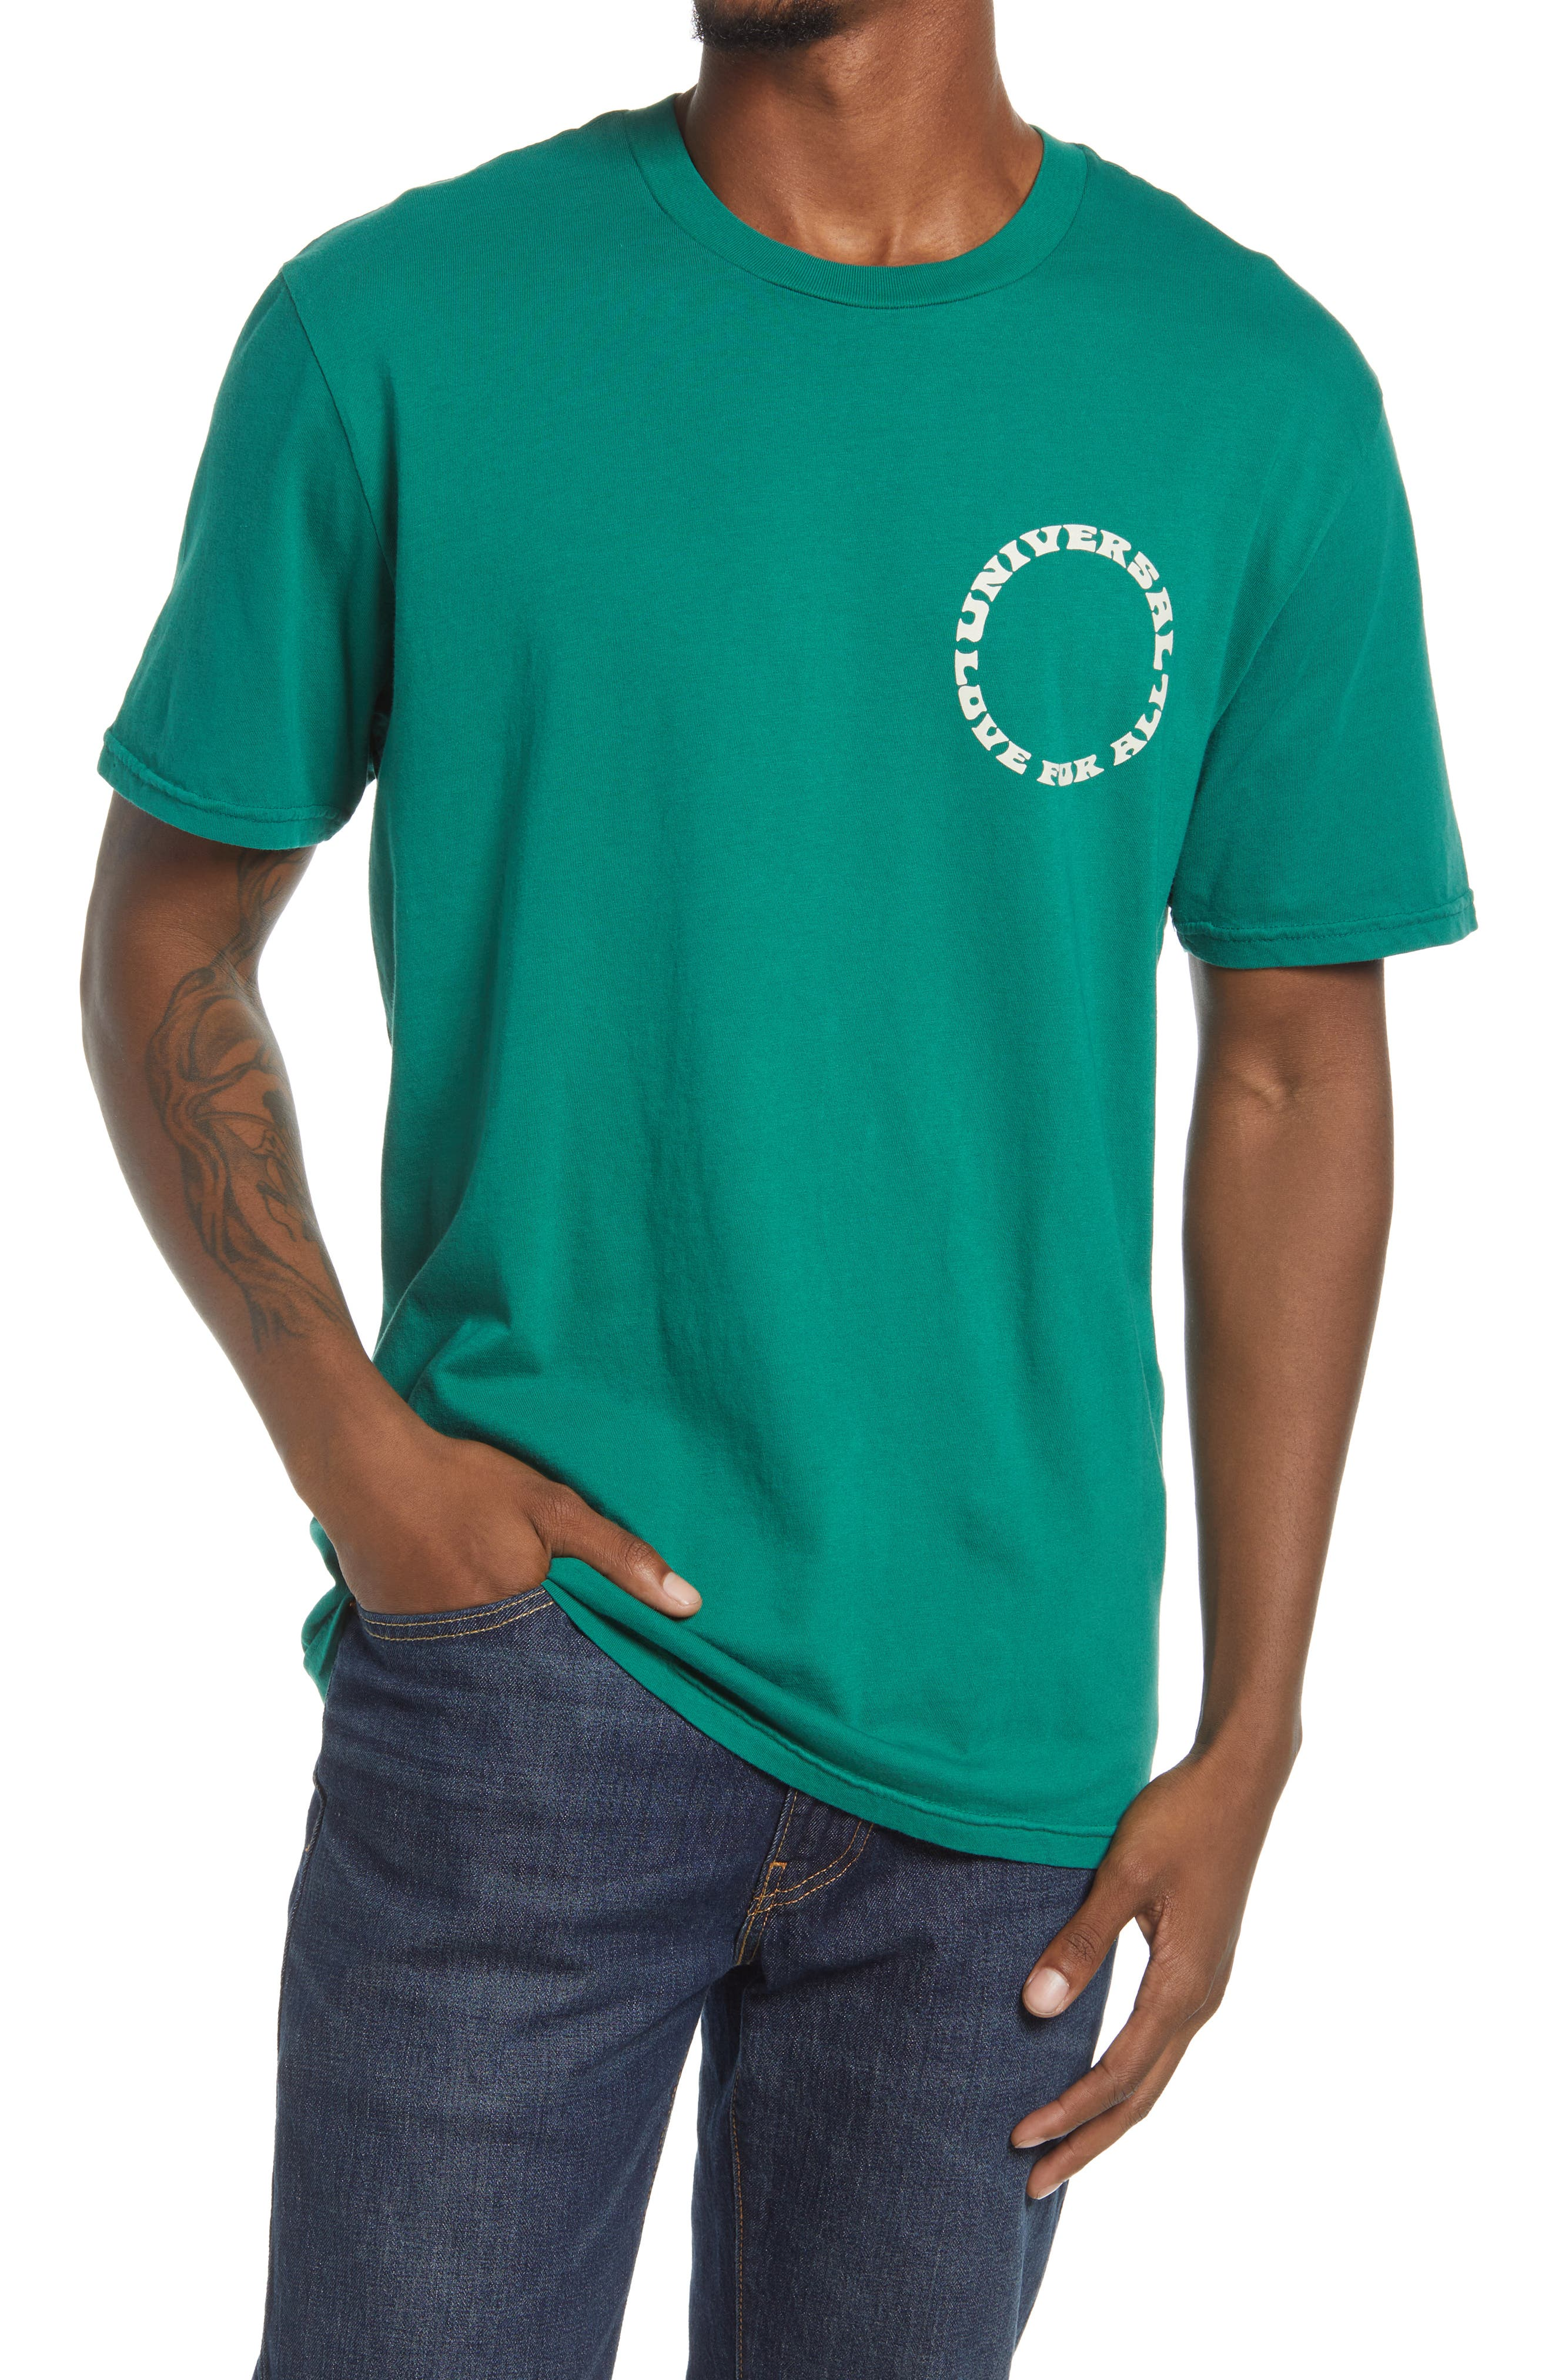 Men's Universal Love For All Graphic Tee